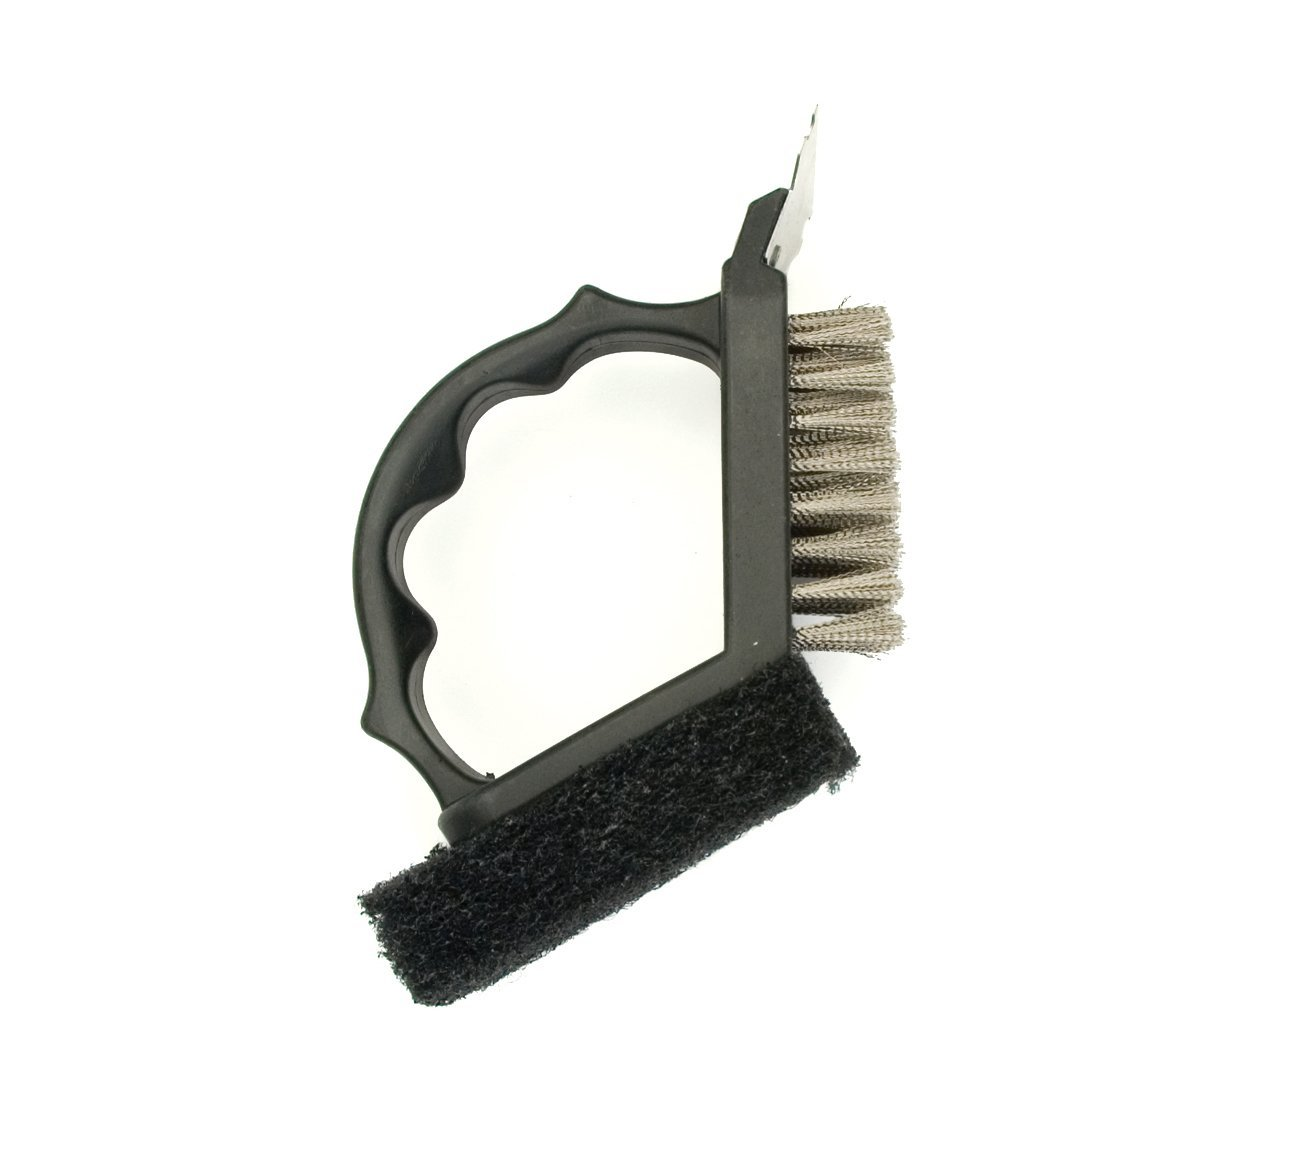 Charcoal Companion 2-in-1 Grill Brush with Black Plastic Handle